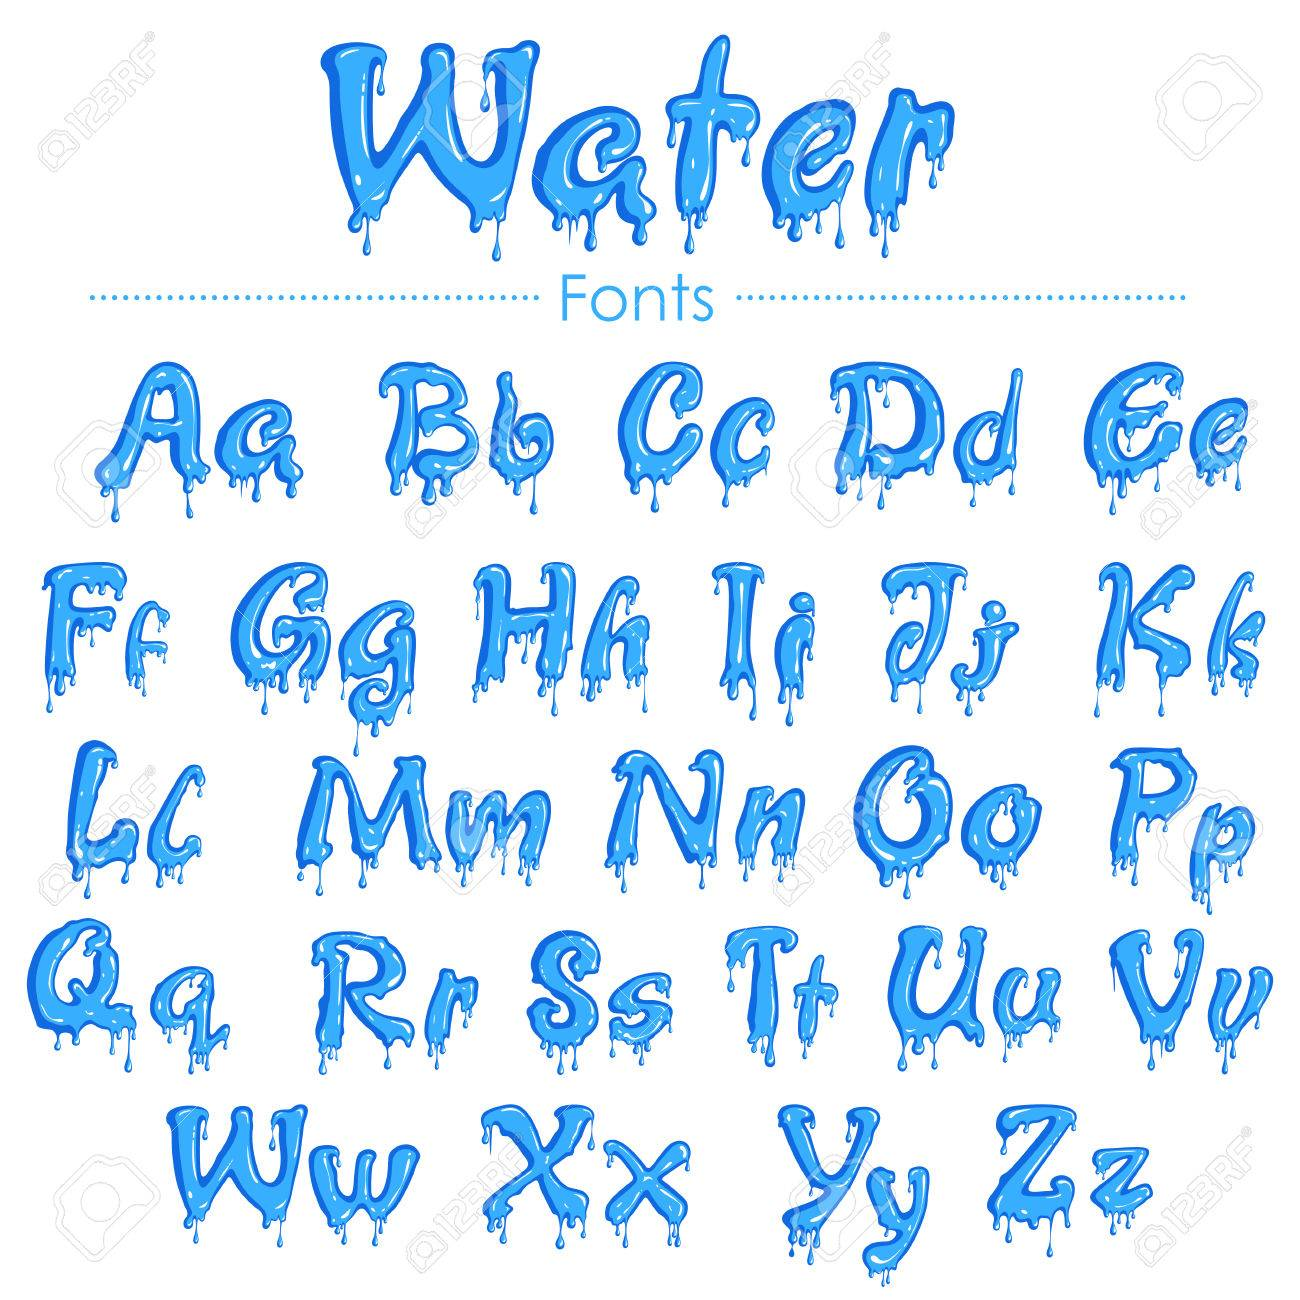 Color art tipografia - Vector Illustration Of English Font In Water Texture